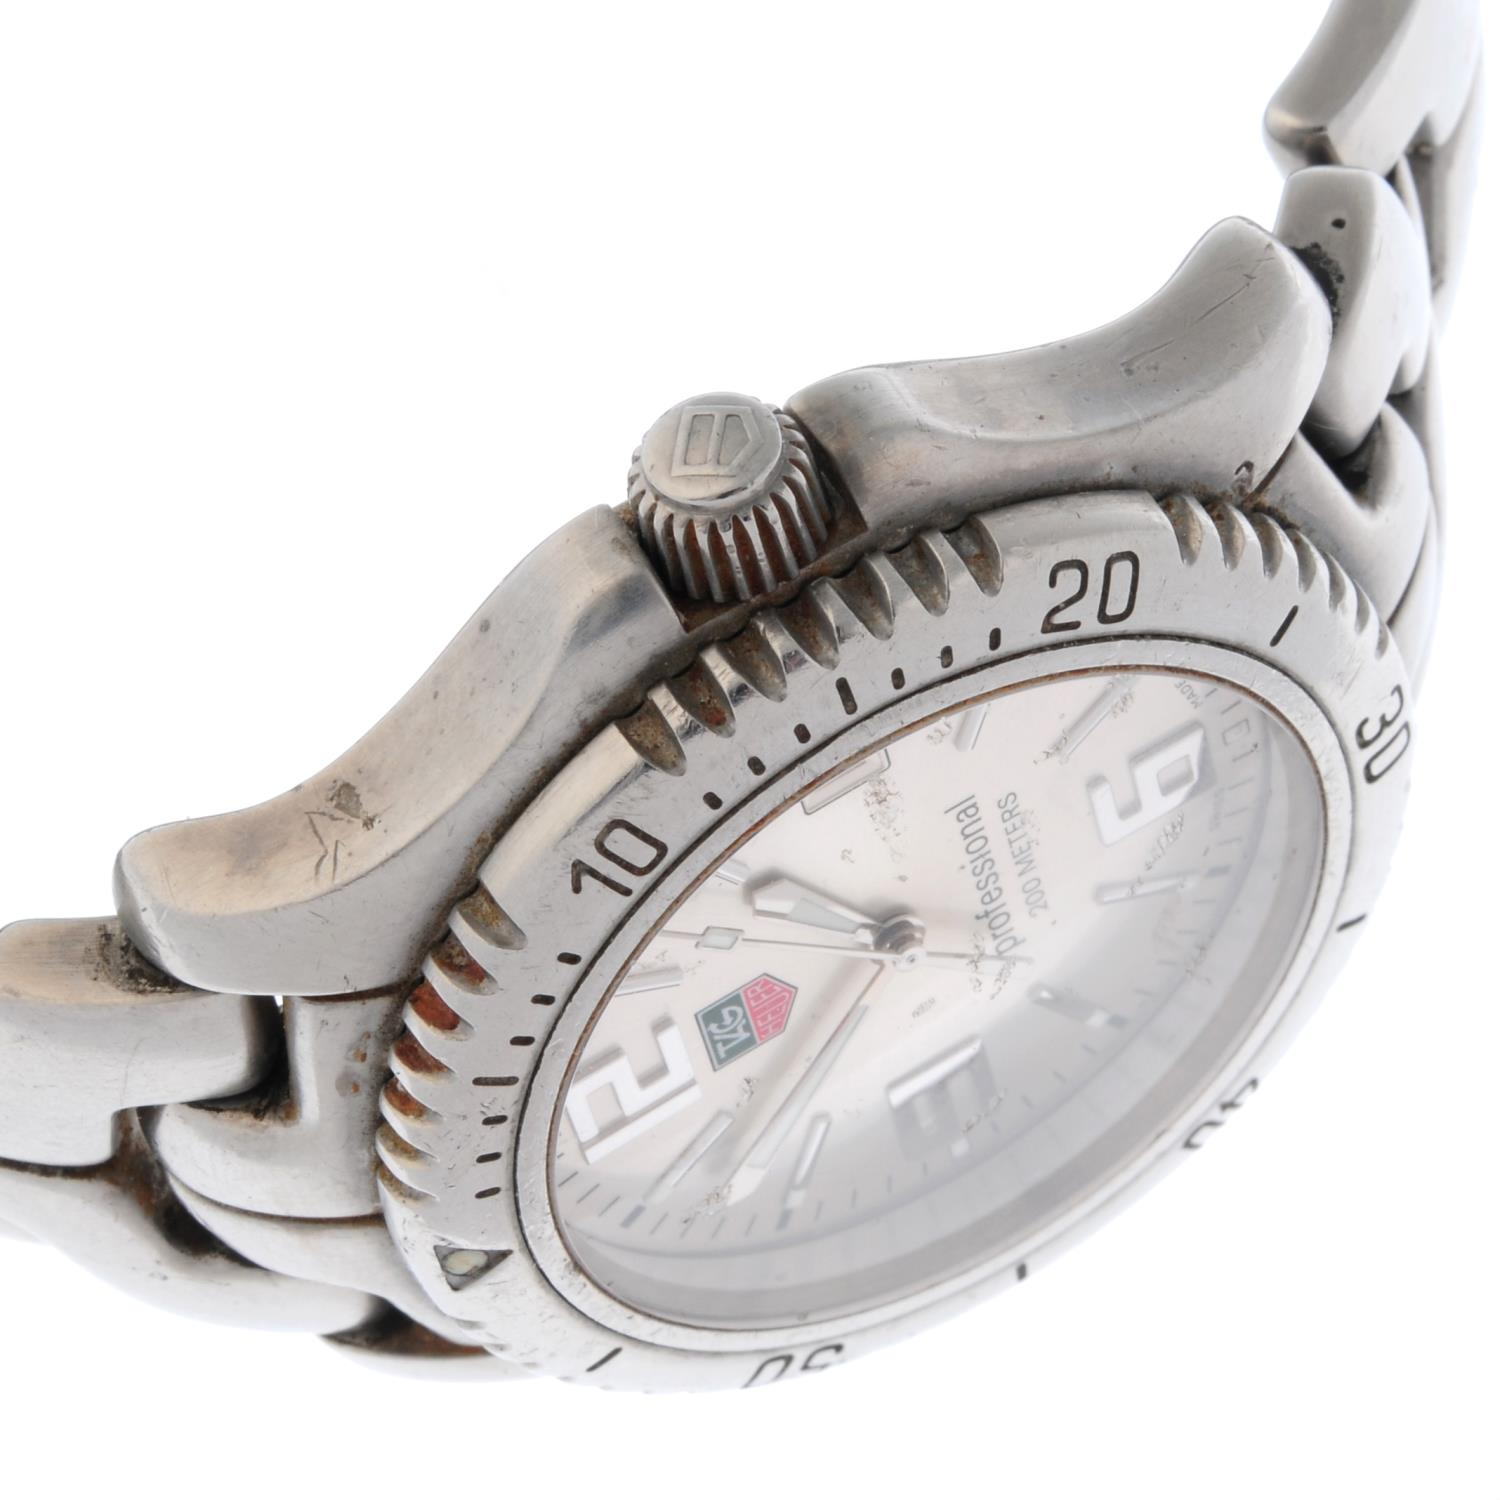 TAG HEUER - a Link bracelet watch. - Image 3 of 4